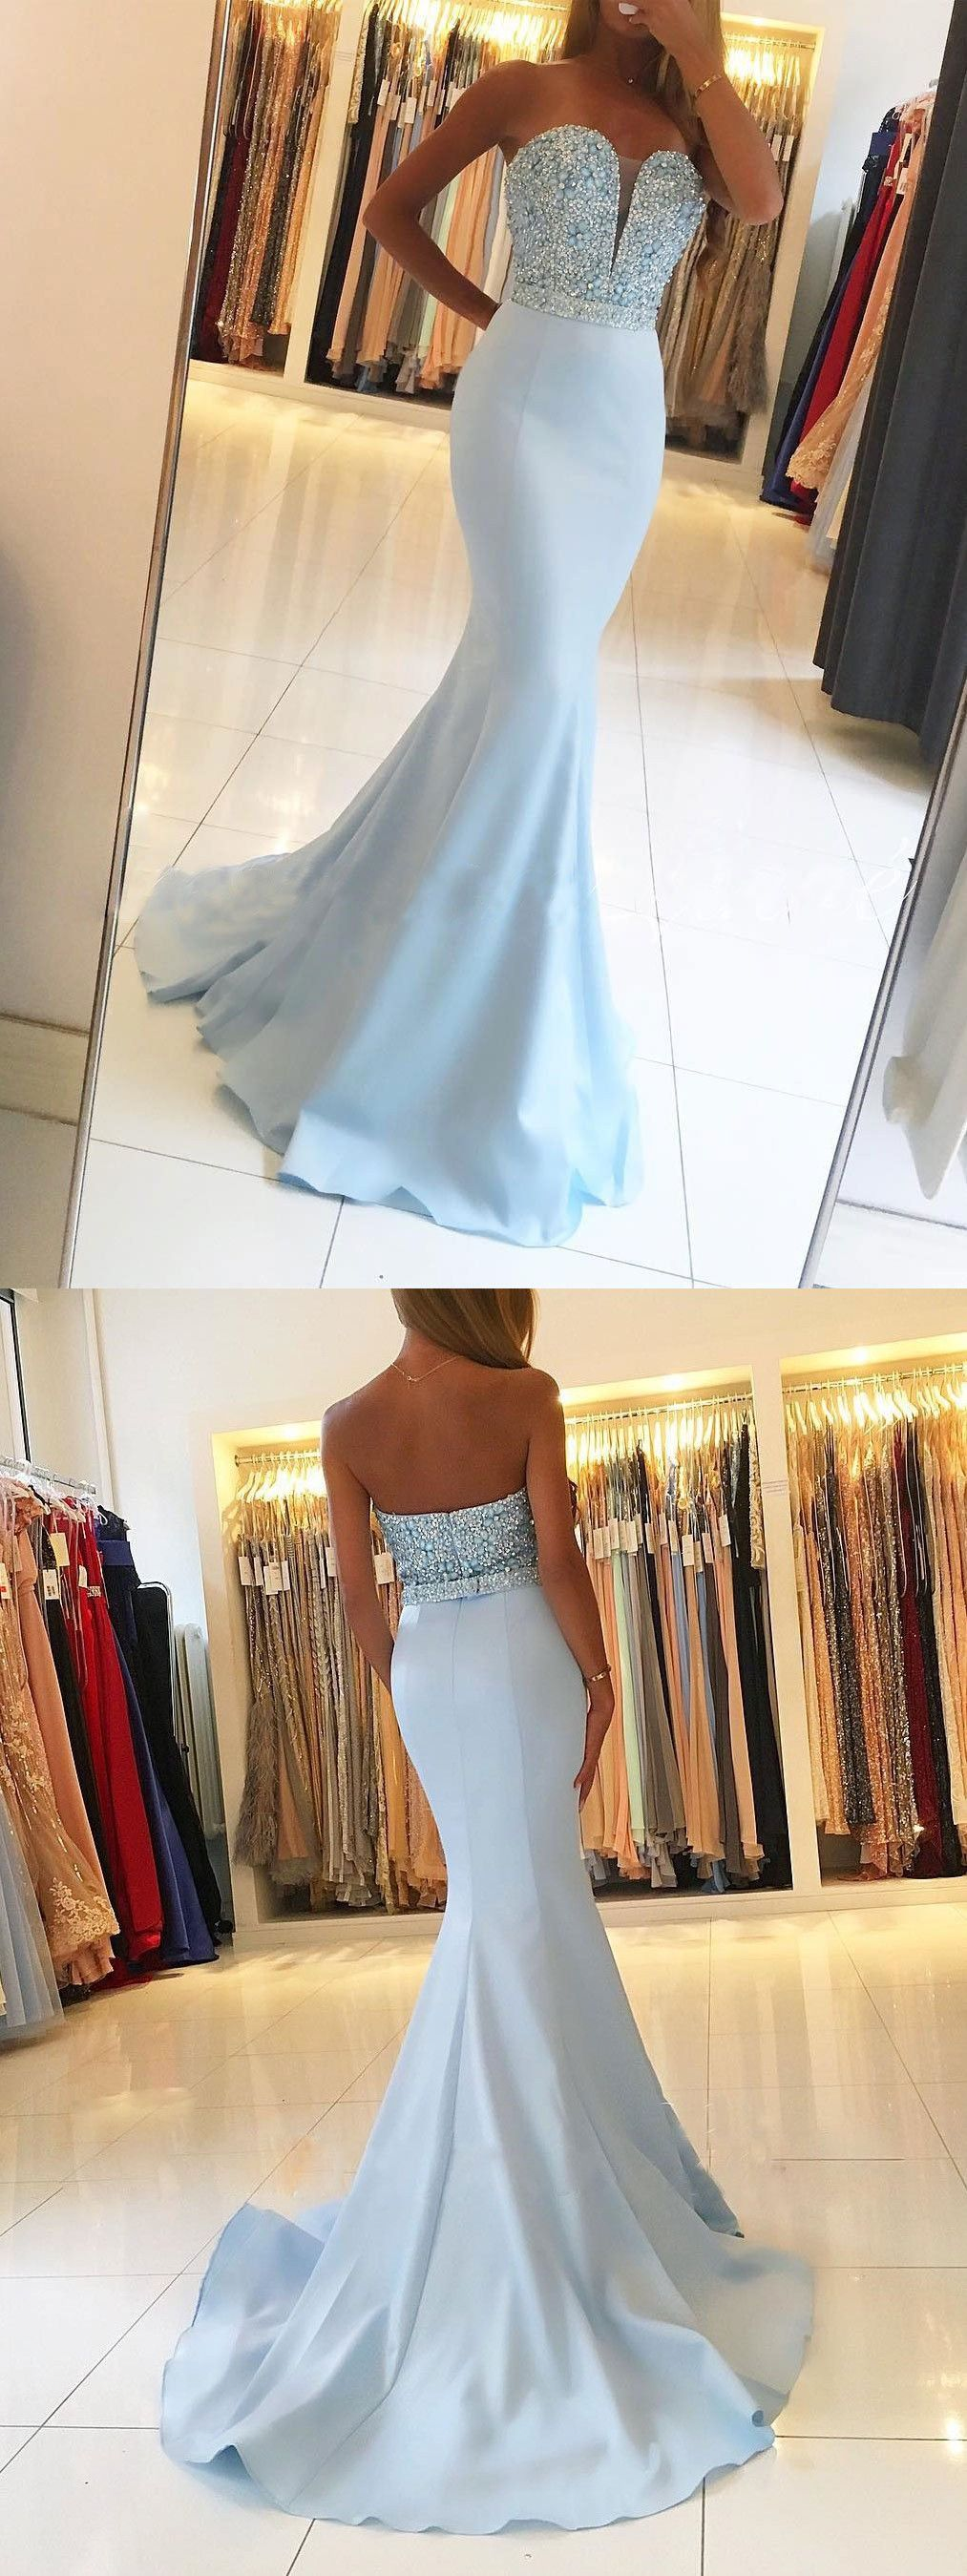 Strapless prom dresses sweetheart prom dressesmermaid prom dresses